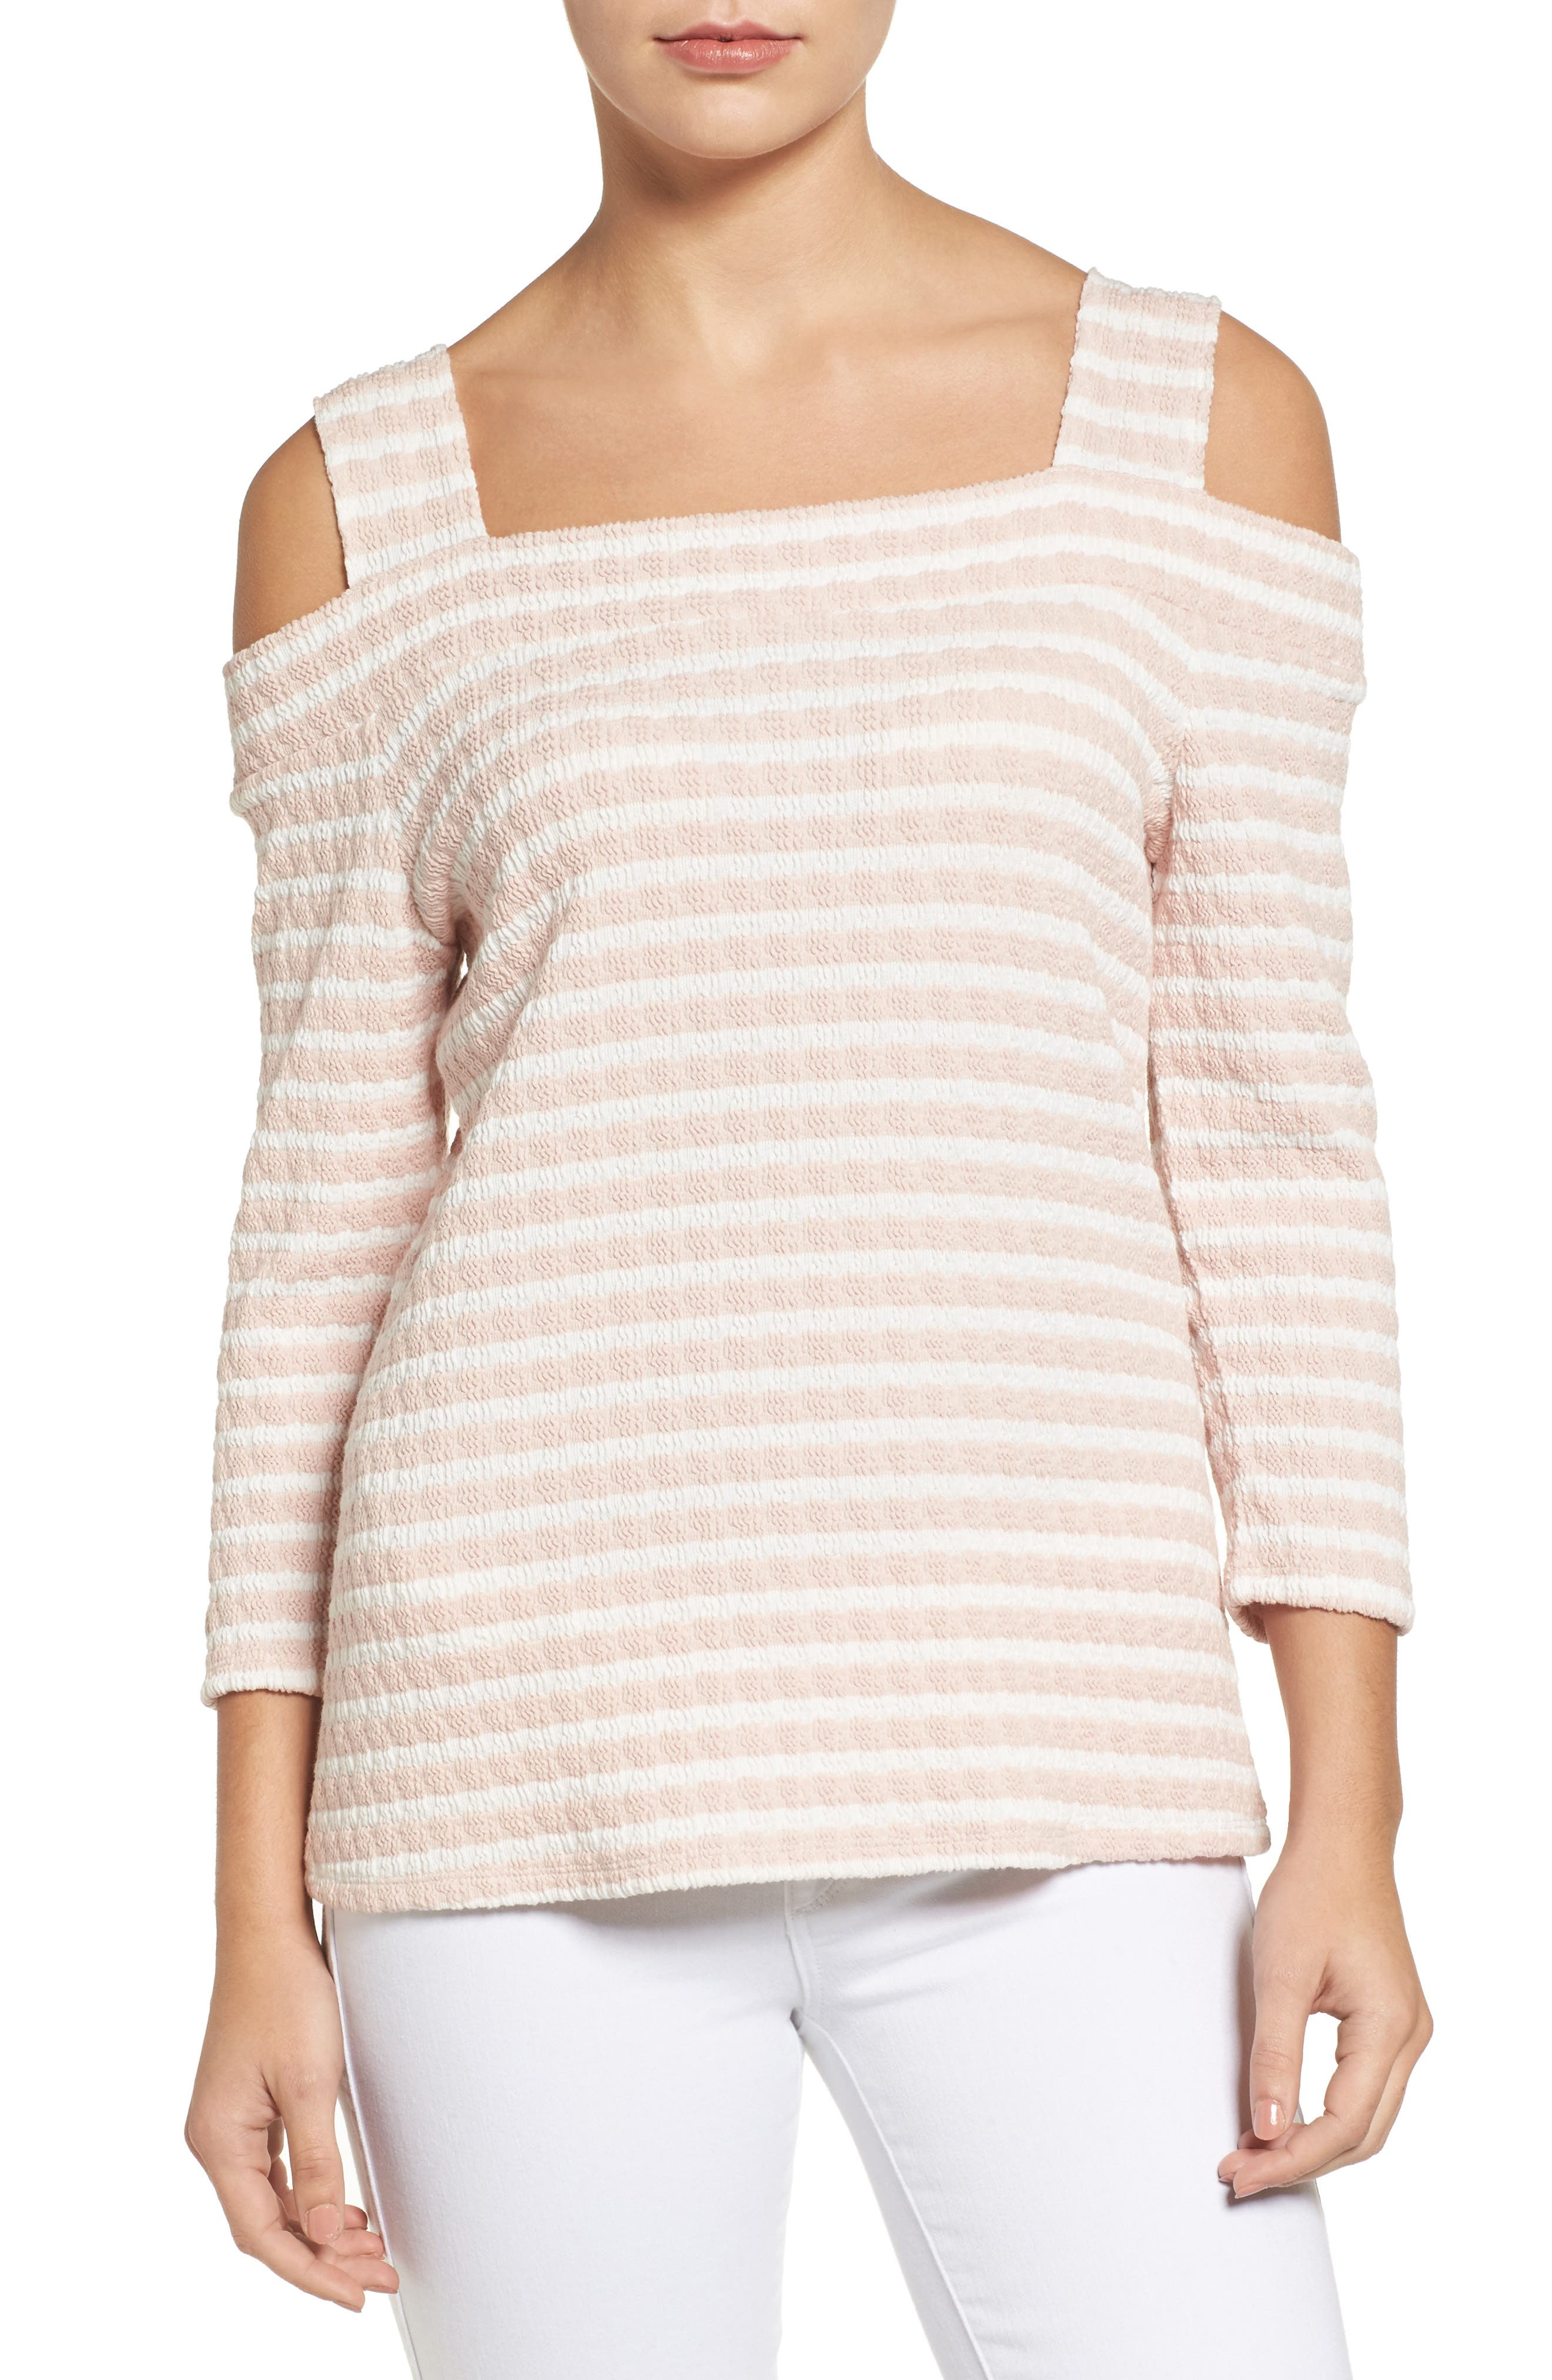 KUT FROM THE KLOTH Fridi Texture Stripe Cold Shoulder Top, Main, color, 194